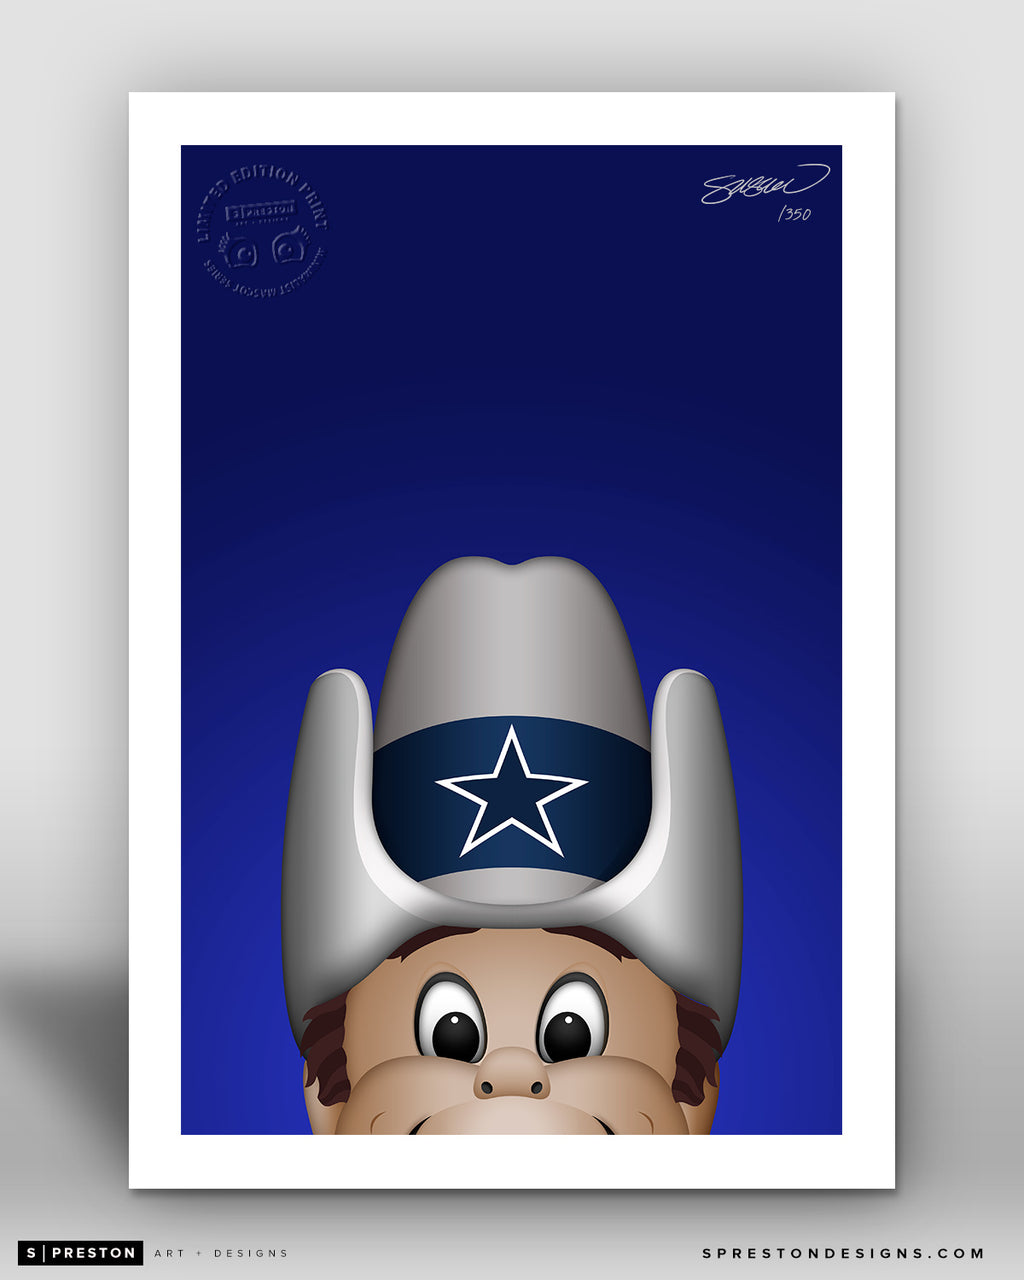 Minimalist Rowdy Dallas Cowboys Mascot - S. Preston